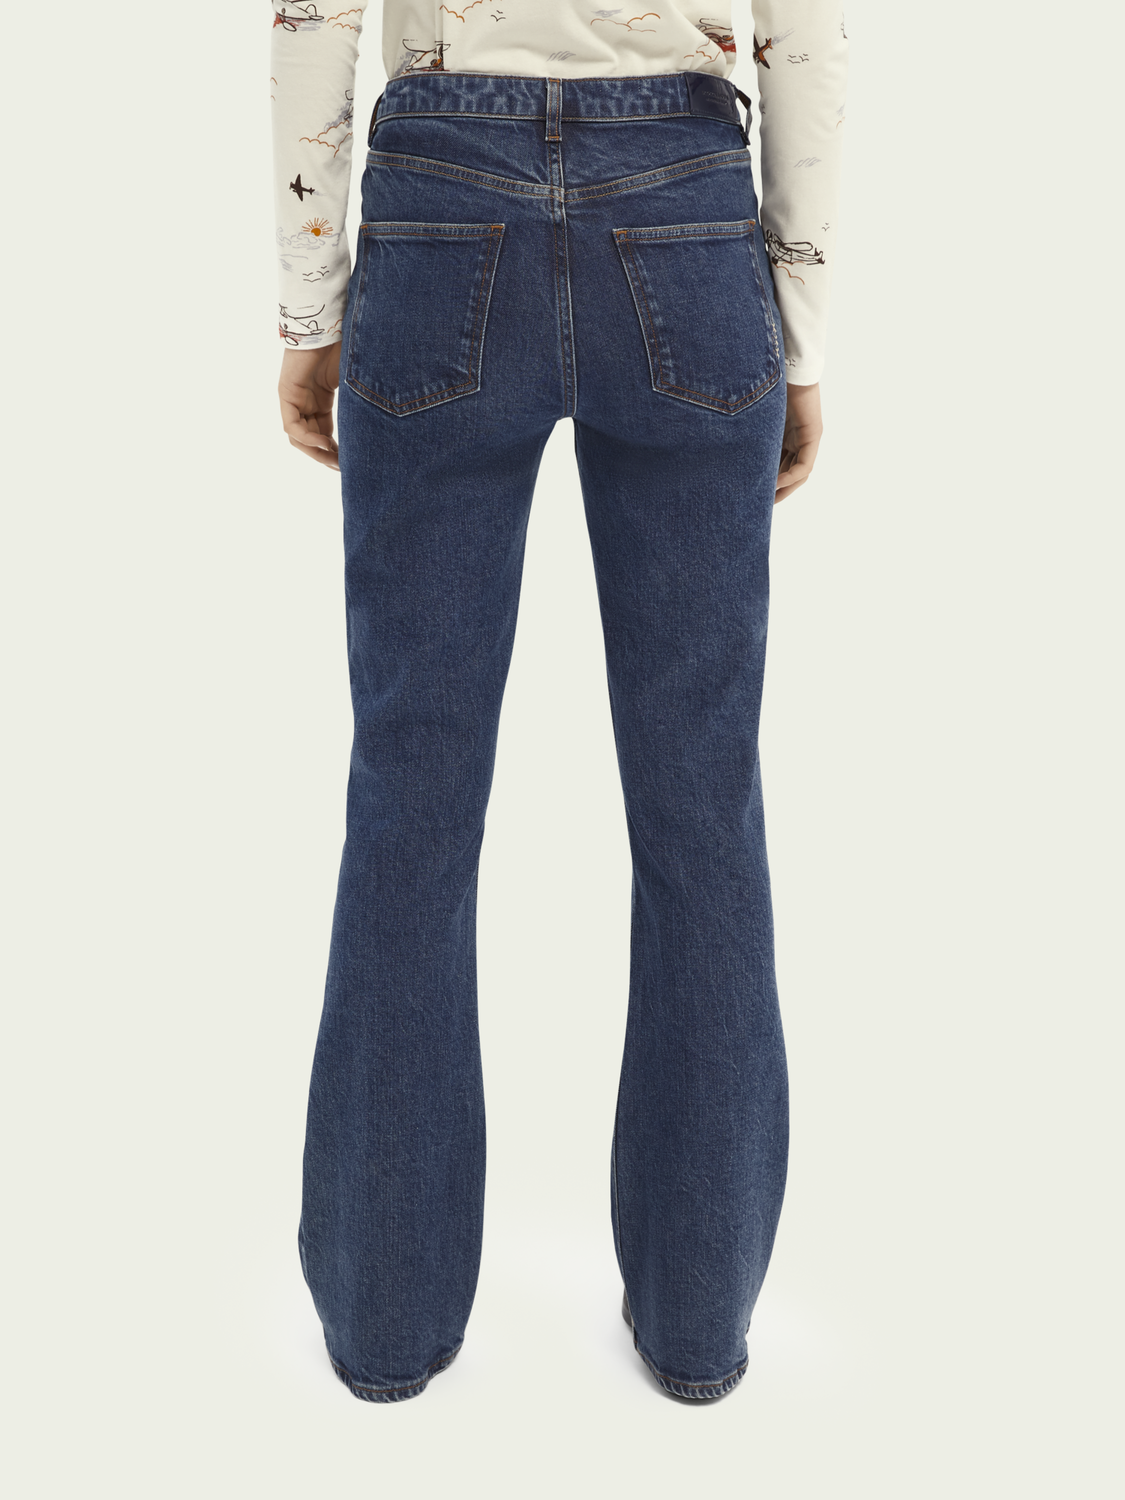 Dames The Charm jeans – Ocean Rinse